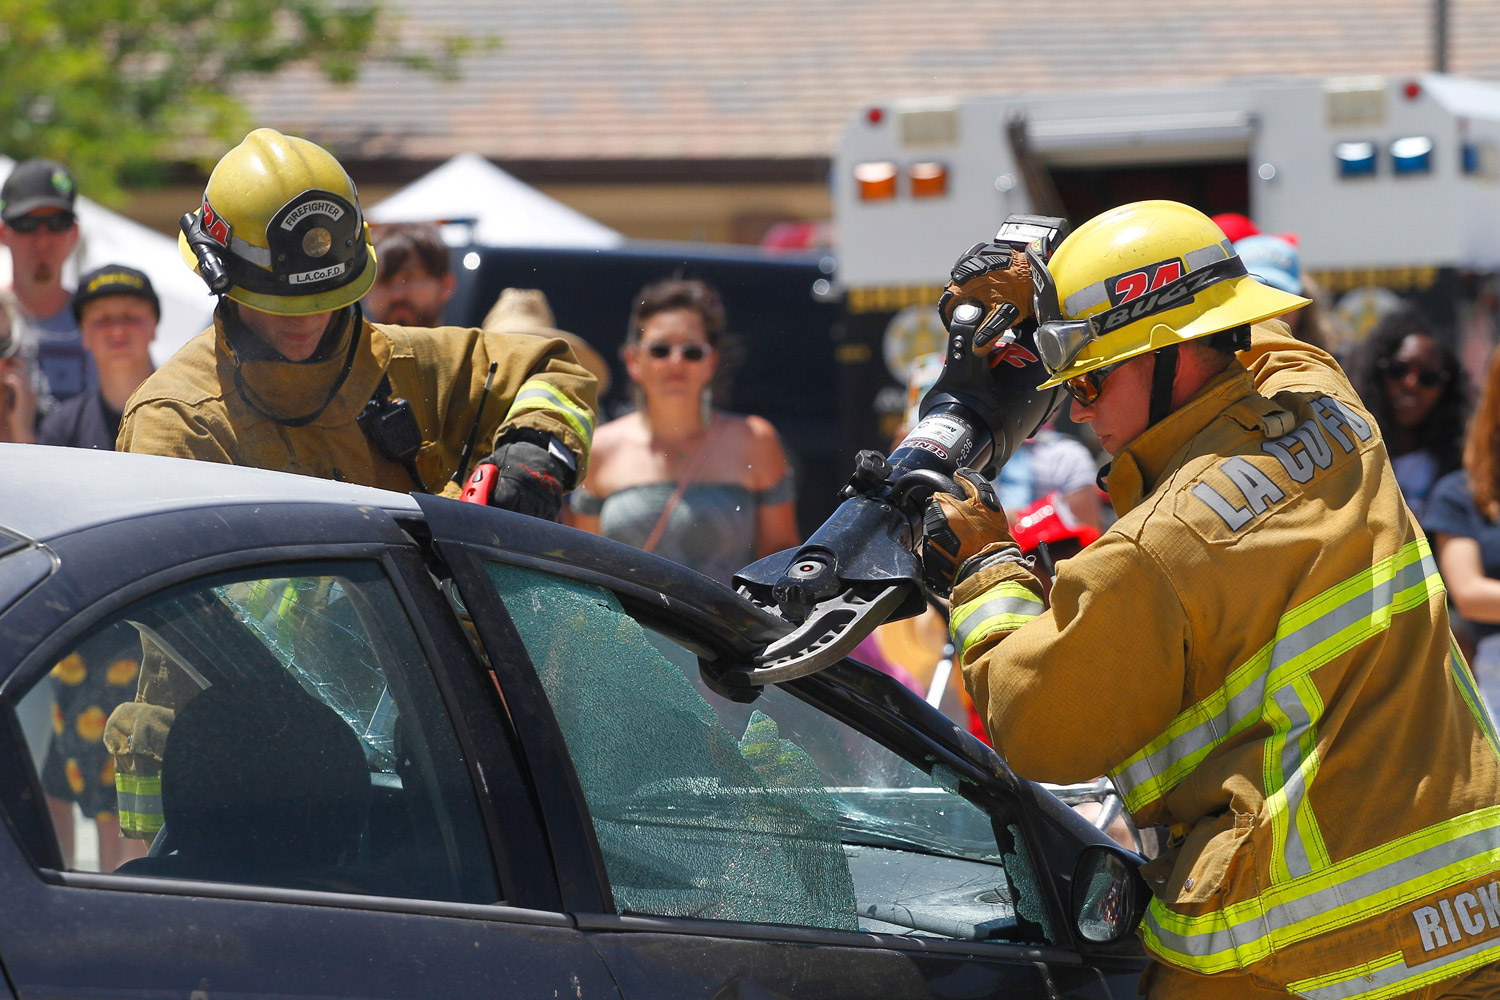 The Los Angeles County Fire Department's (LACoFD) second Fire Service Day this year took place at Fire Station 129 in Lancaster on Saturday, May 4, 2019.  This is the 22nd year of the North Regional Operational Bureau's event which featured fire apparatus, demonstrations and a chili cook-off.